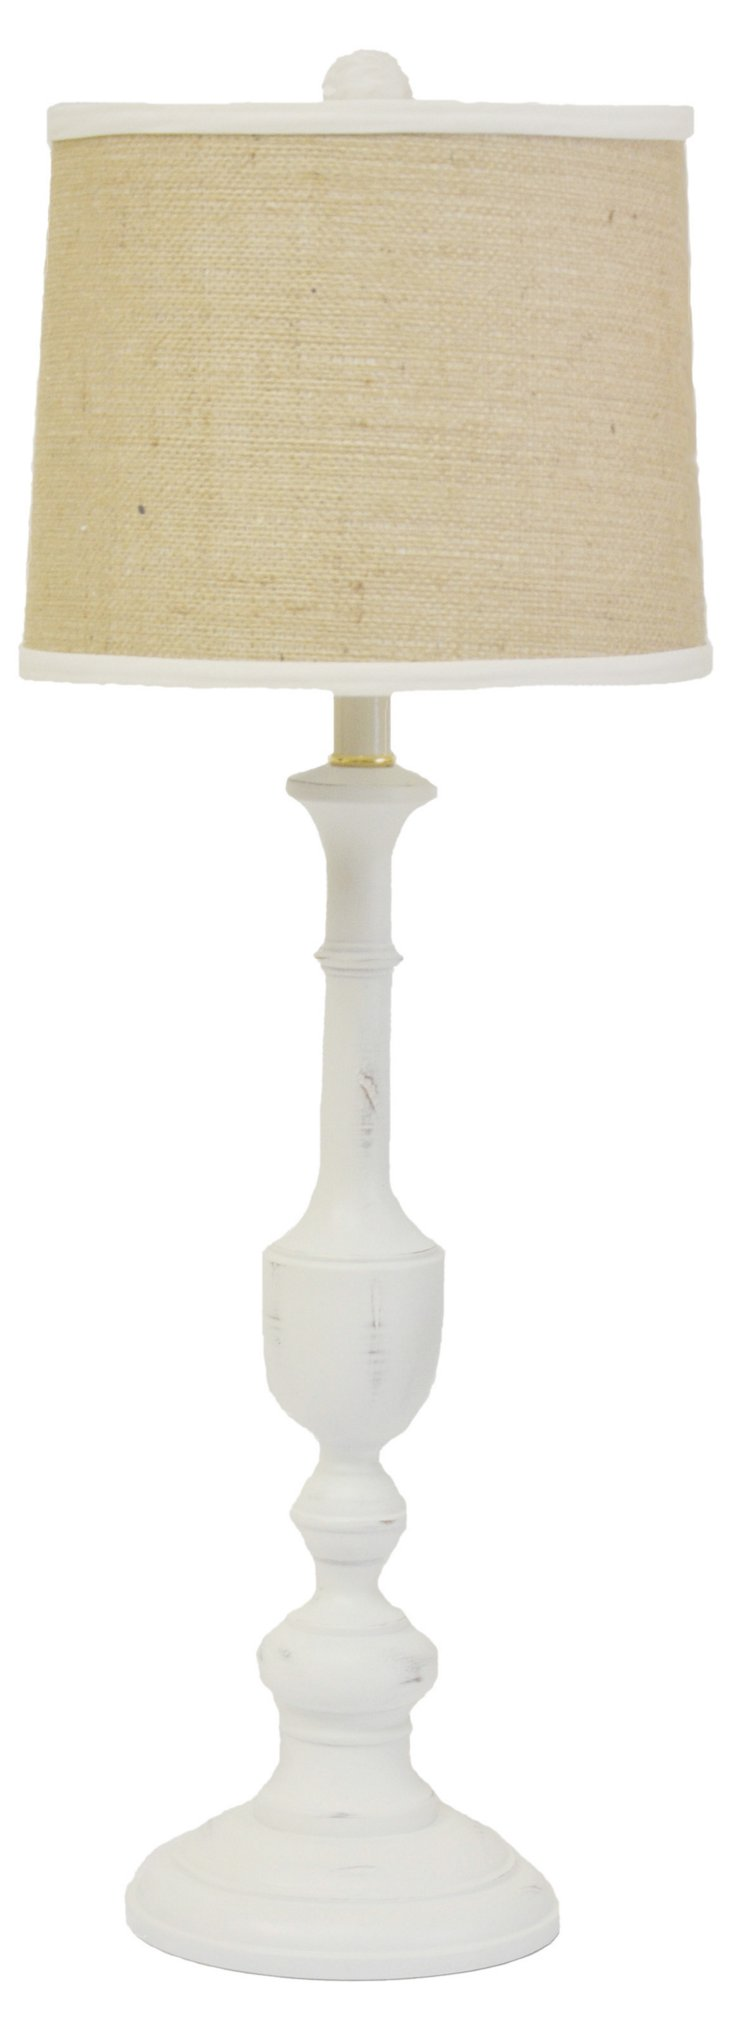 Cooper Candlestick Lamp, Kitty White